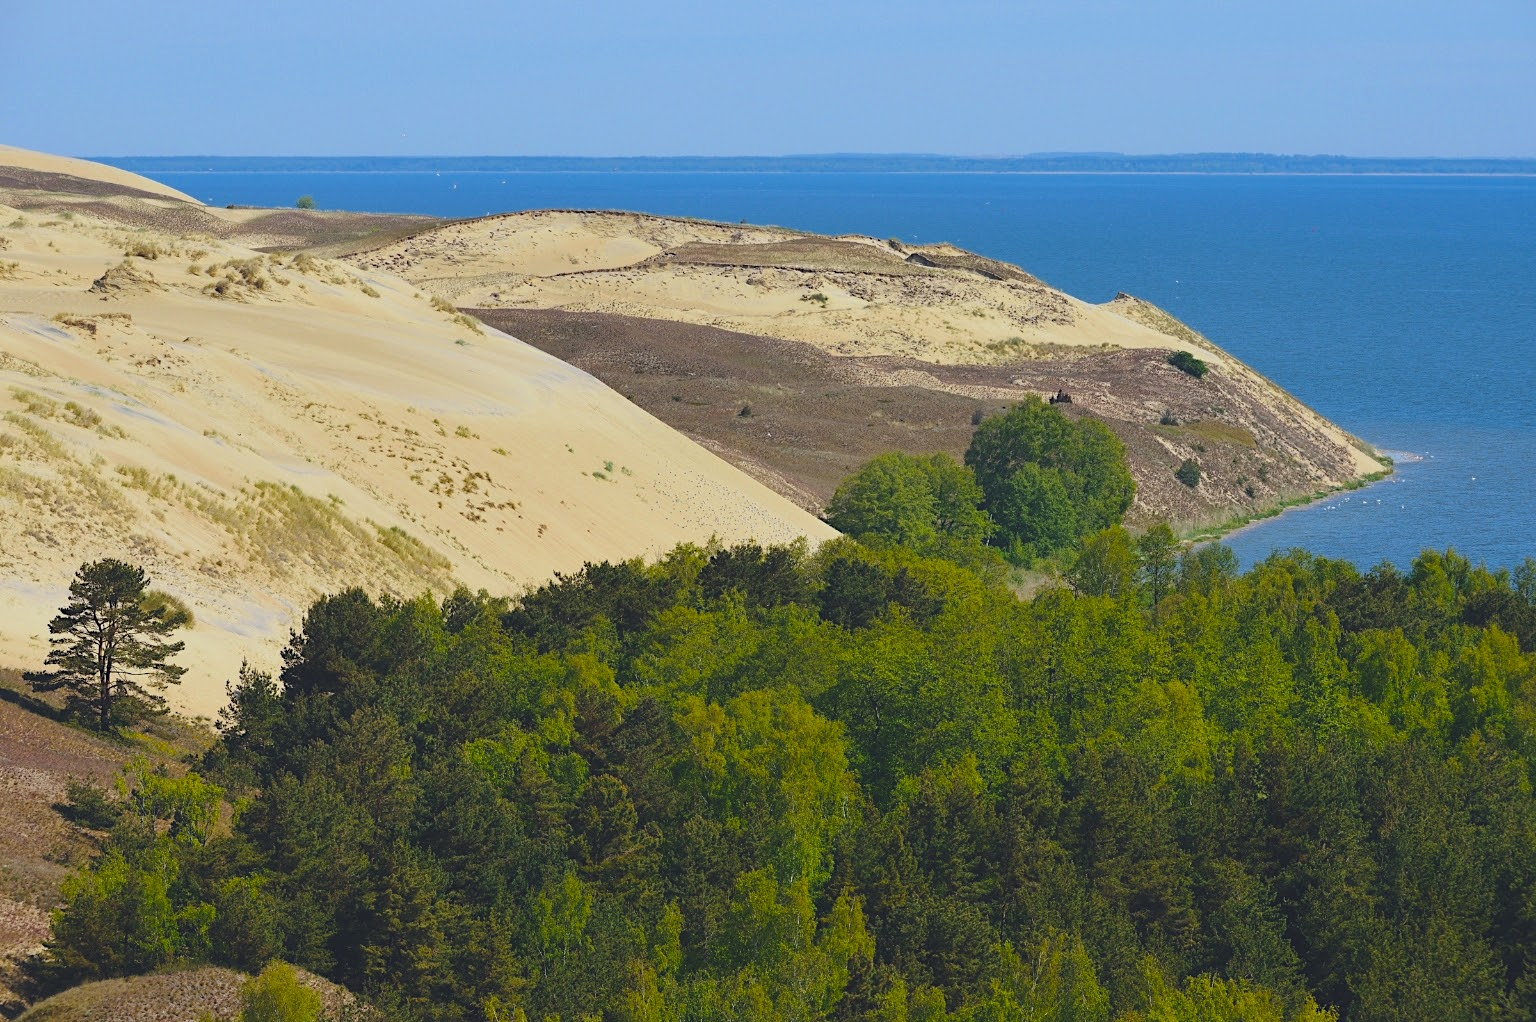 The shifting Curonian Spit in Lithuania